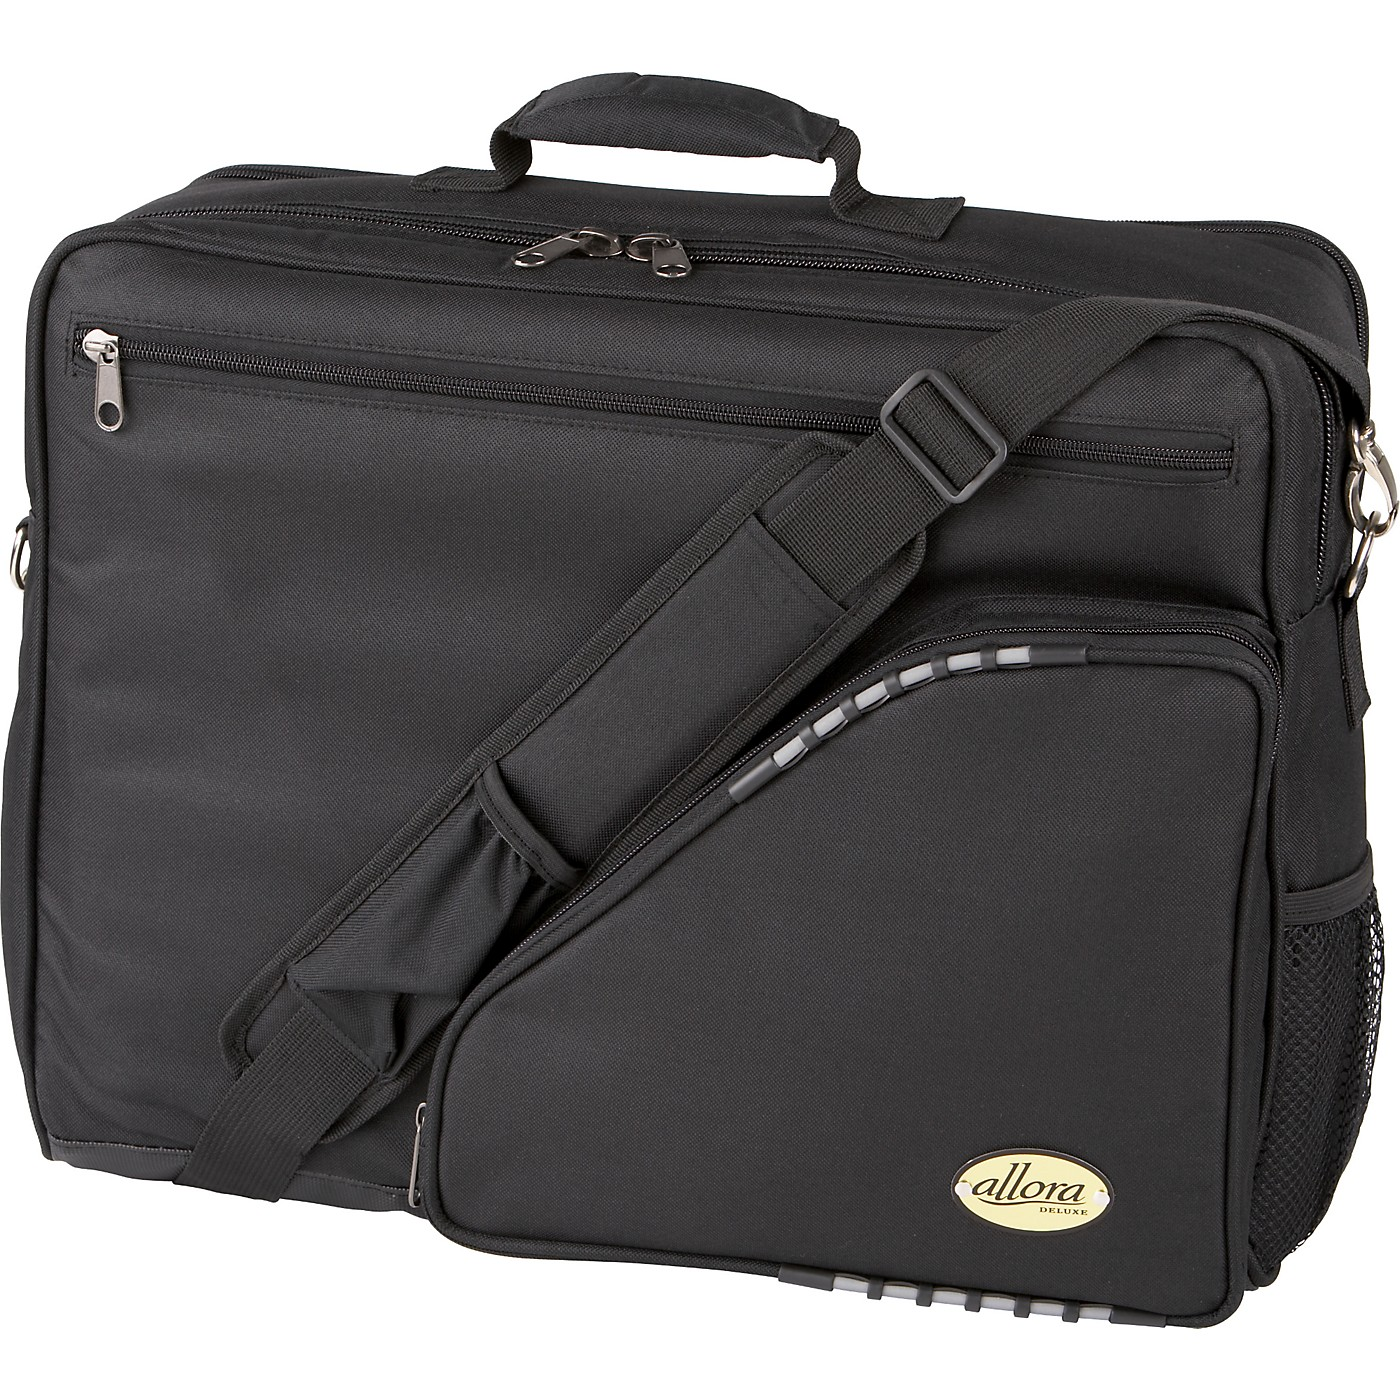 Allora Case Cover for Double Clarinet Case thumbnail